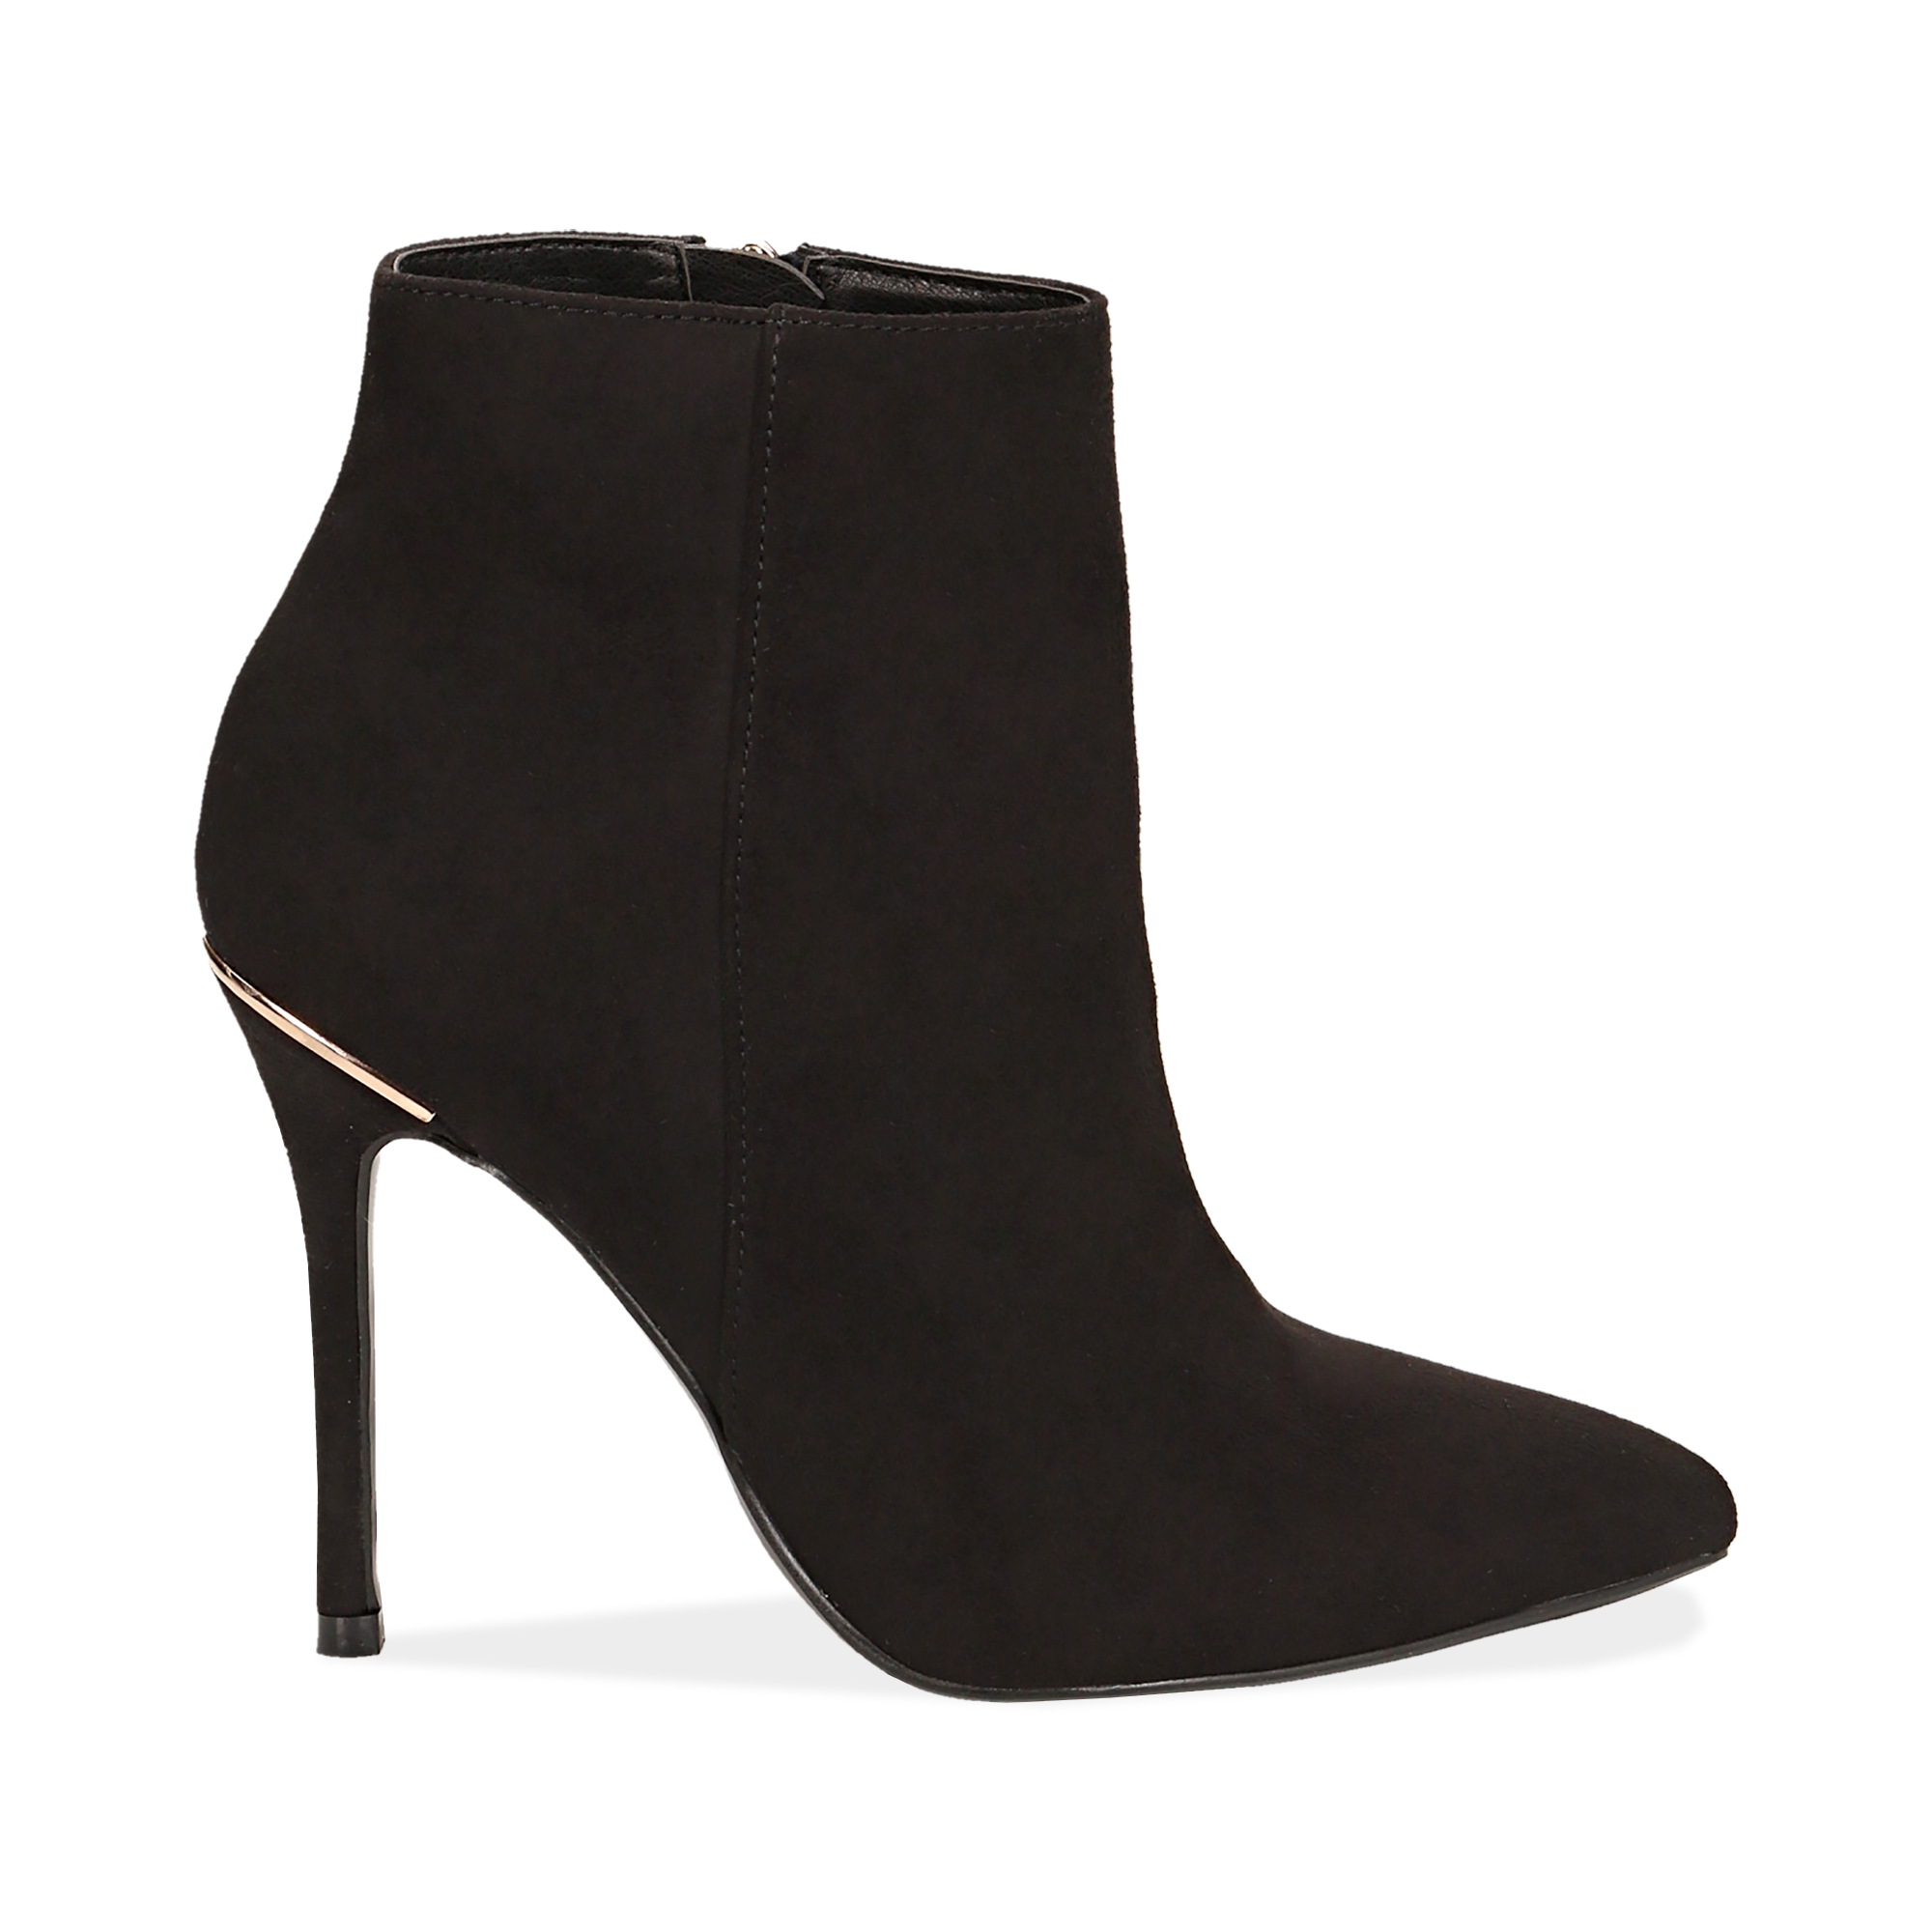 Ankle boots neri in microfibra, tacco 10,5 cm